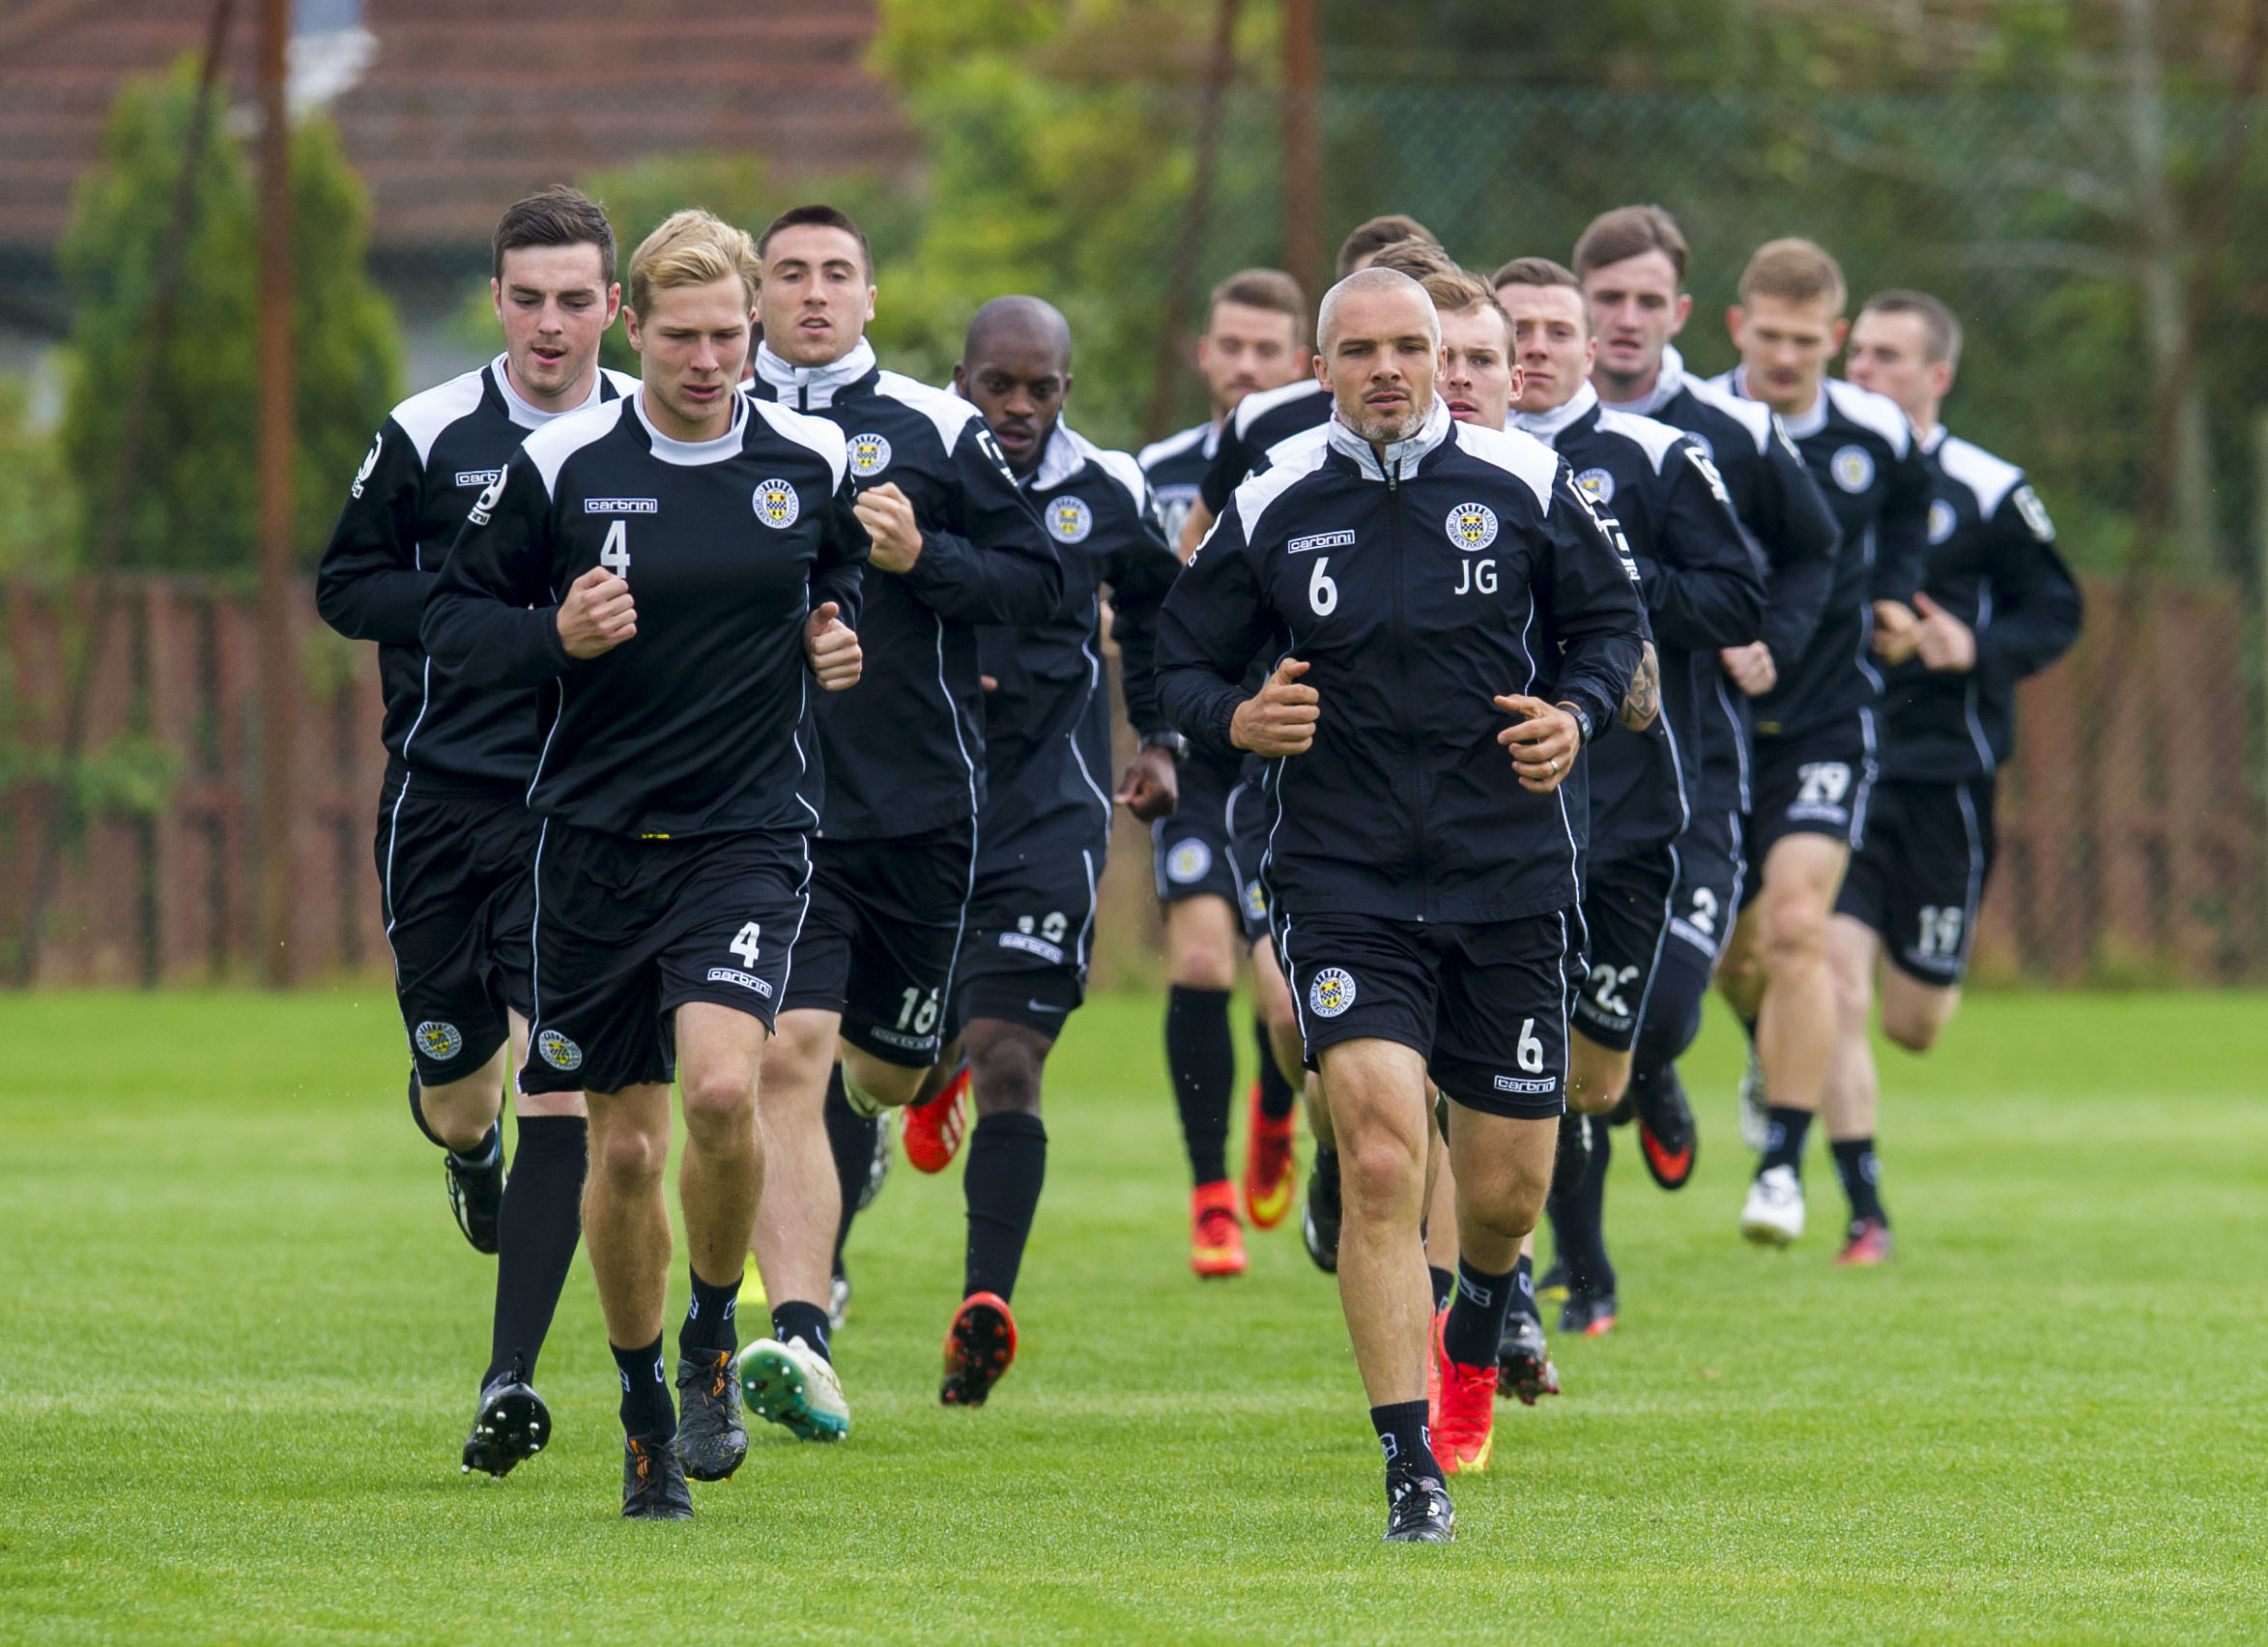 Sean Kelly (far left) played with Jim Goodwin (front right) at St Mirren.